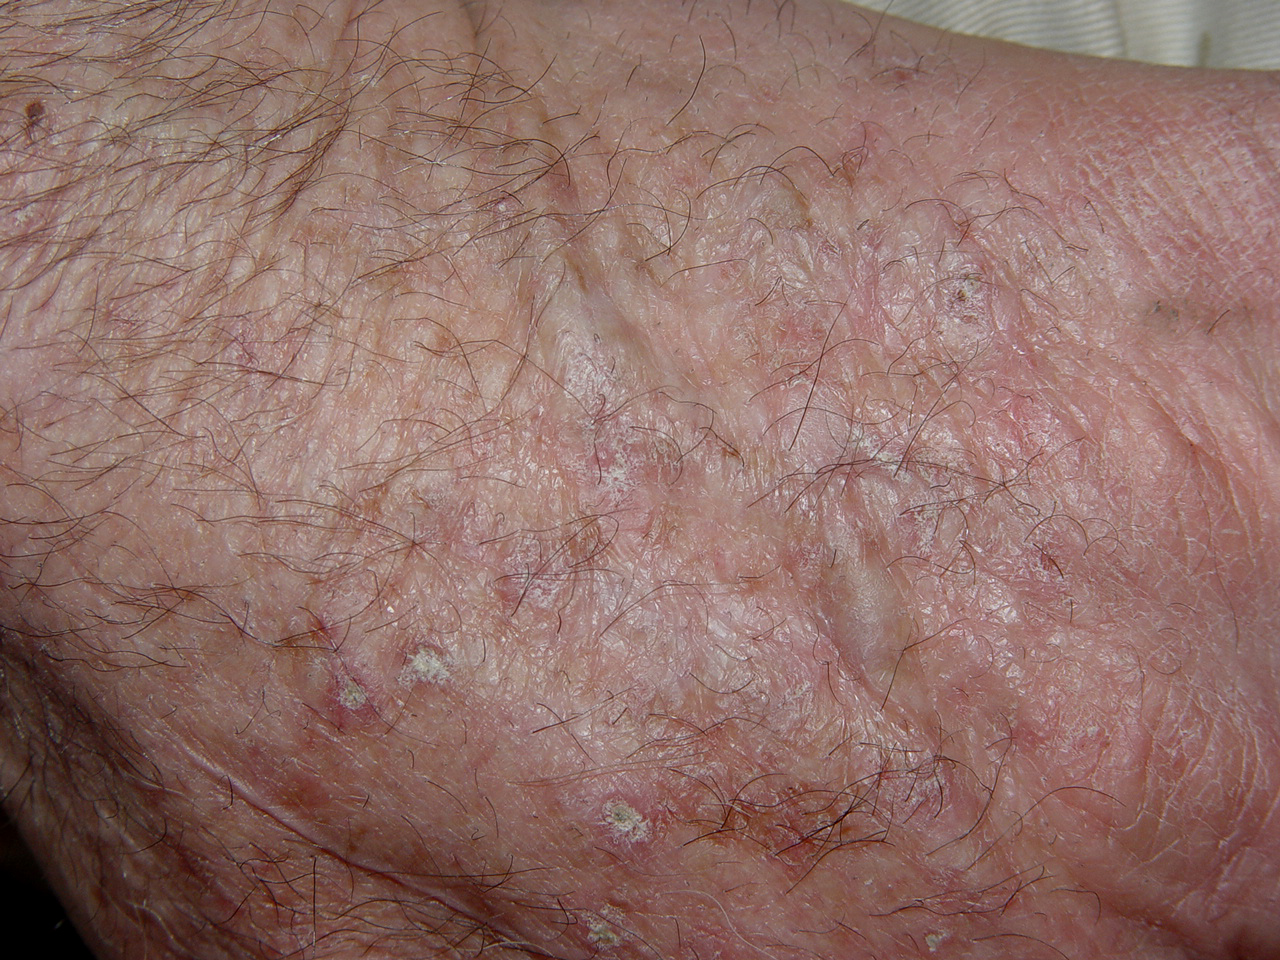 Actinic Keratosis - National Library of Medicine - PubMed ...